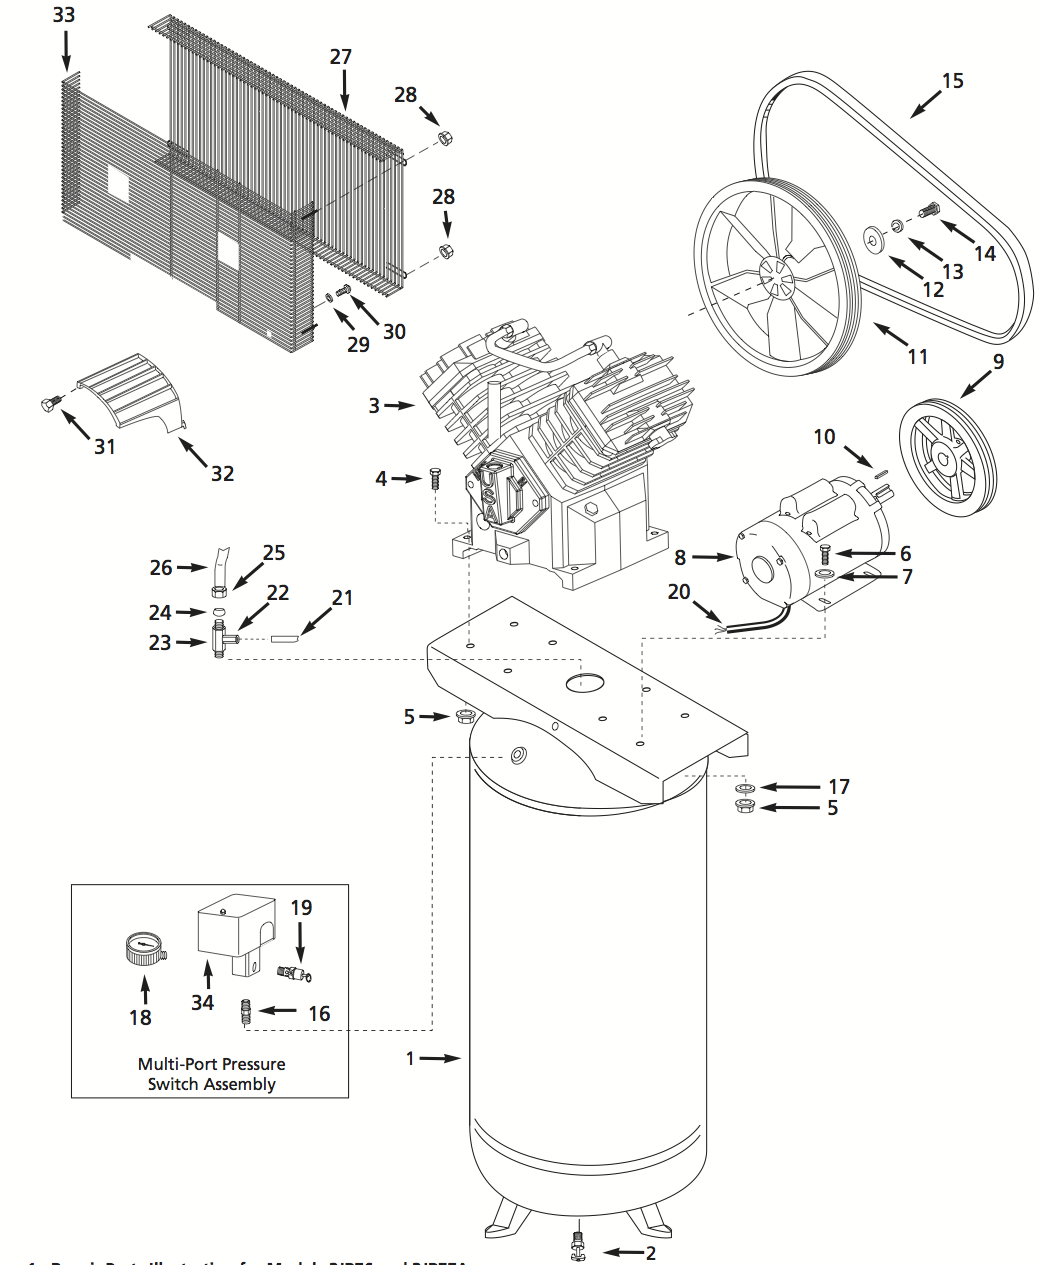 3JR77 - Single Stage Air Compressor Parts schematic